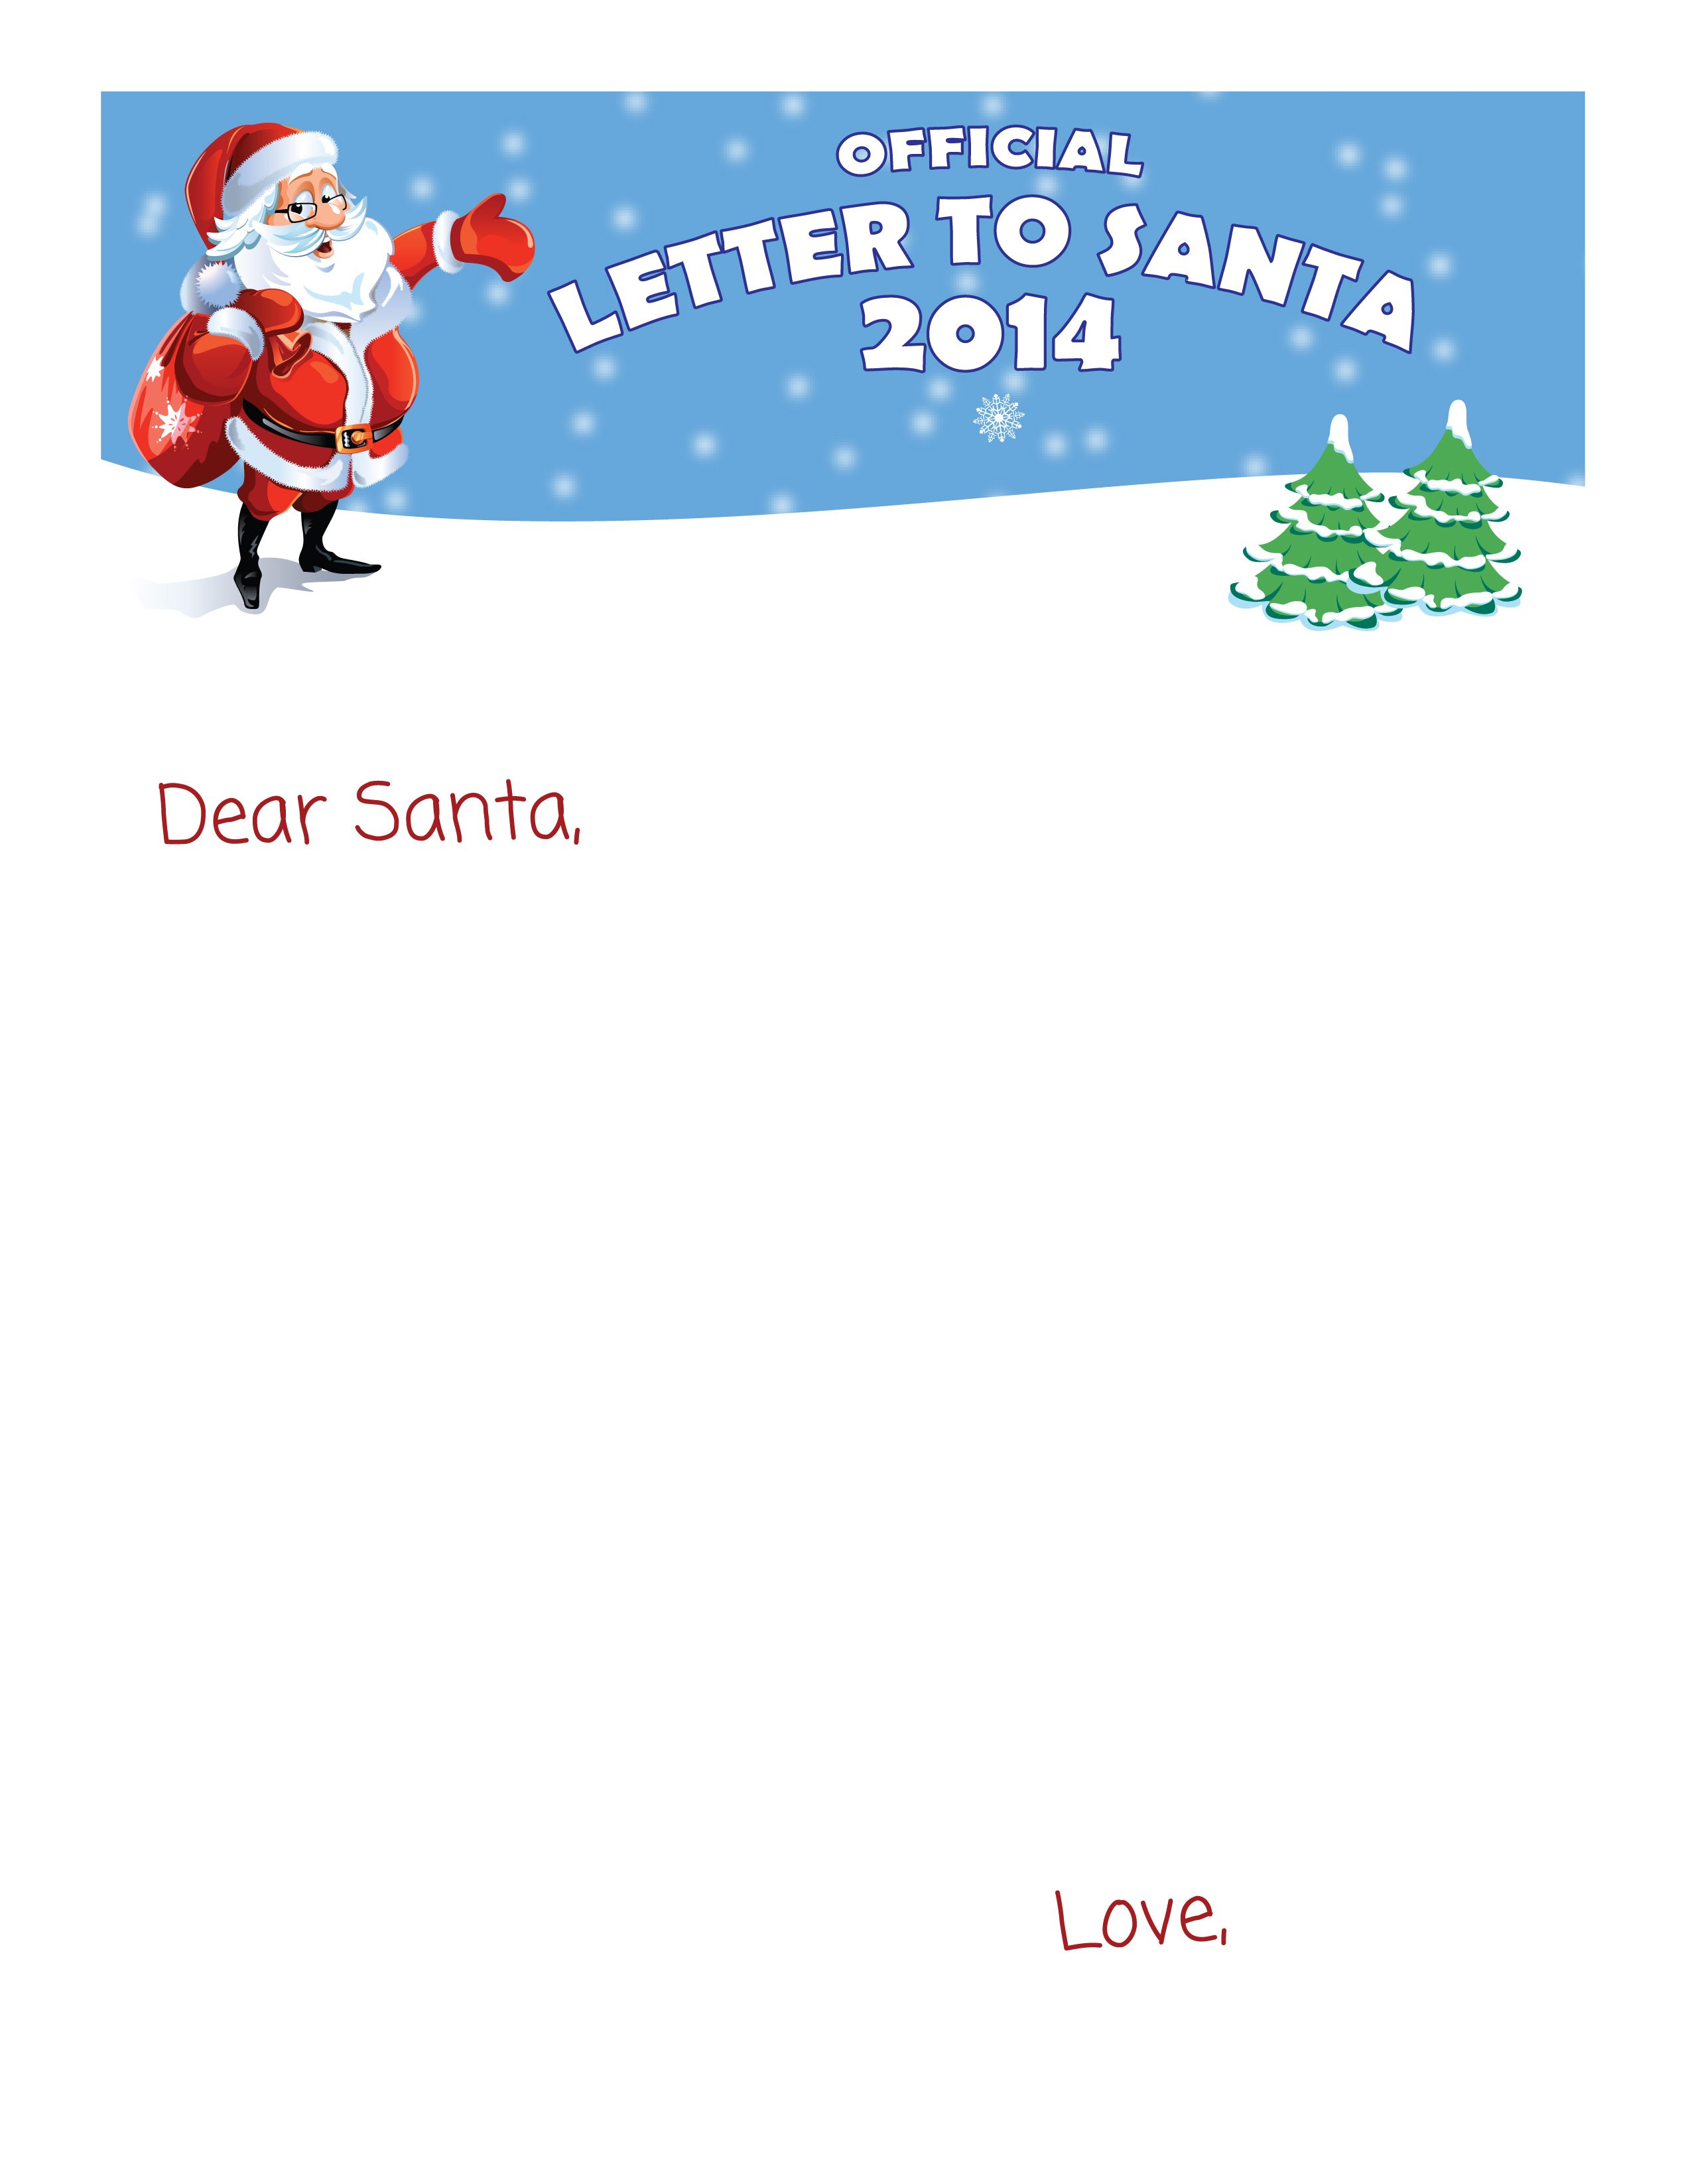 Easy free letter from santa magical package santa free printable easy free letter from santa magical package spiritdancerdesigns Image collections